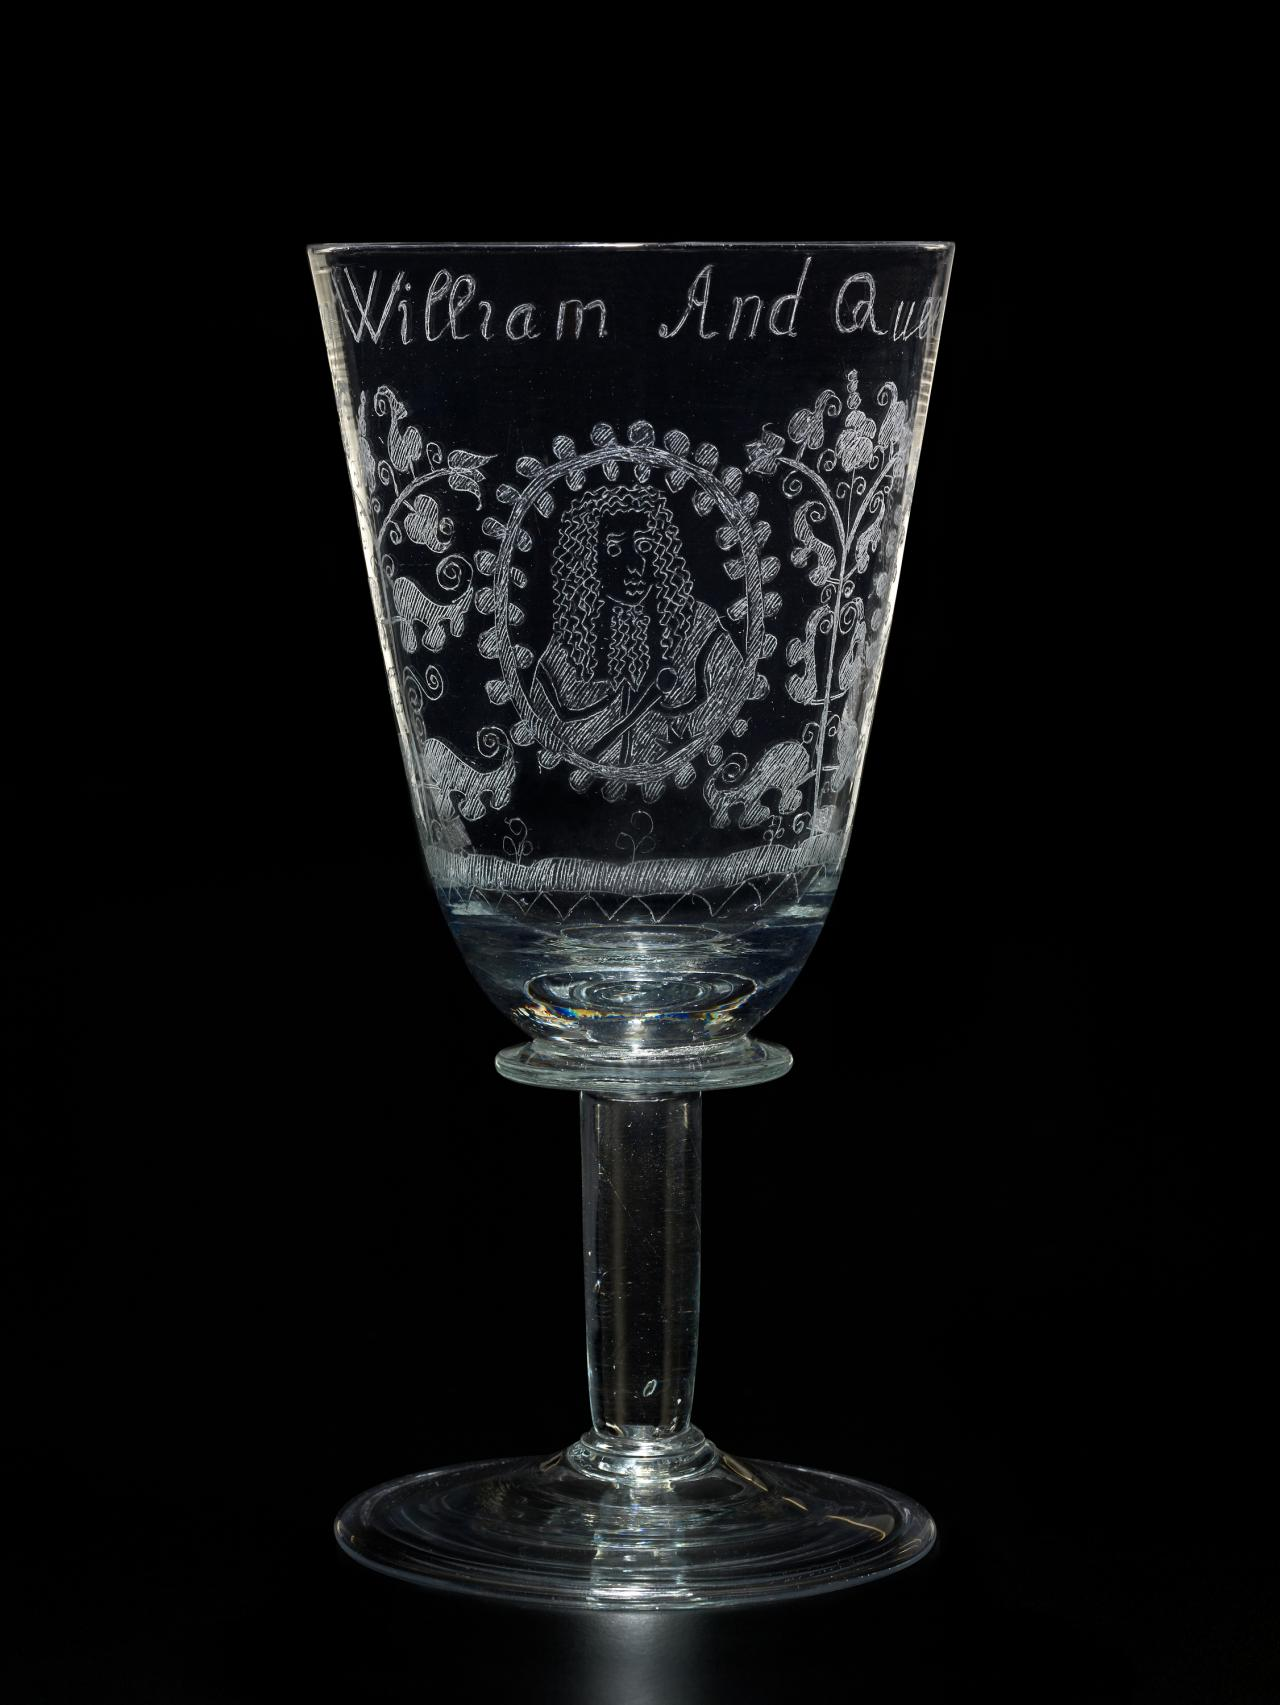 King William and Queen Mary coronation, goblet